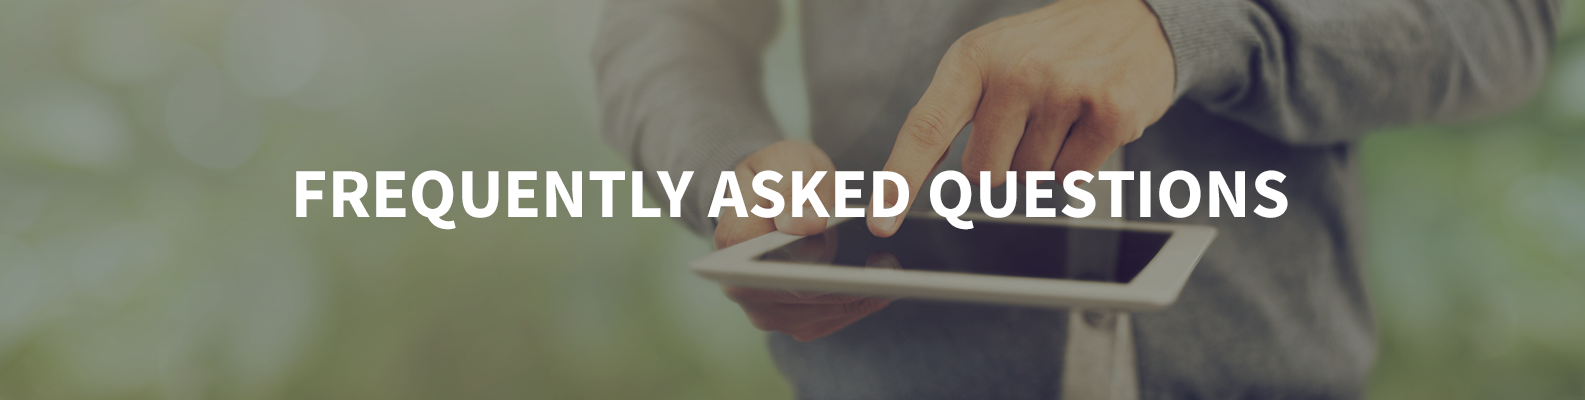 man's hand scrolling over ipad, text across image reads: frequently asked questions